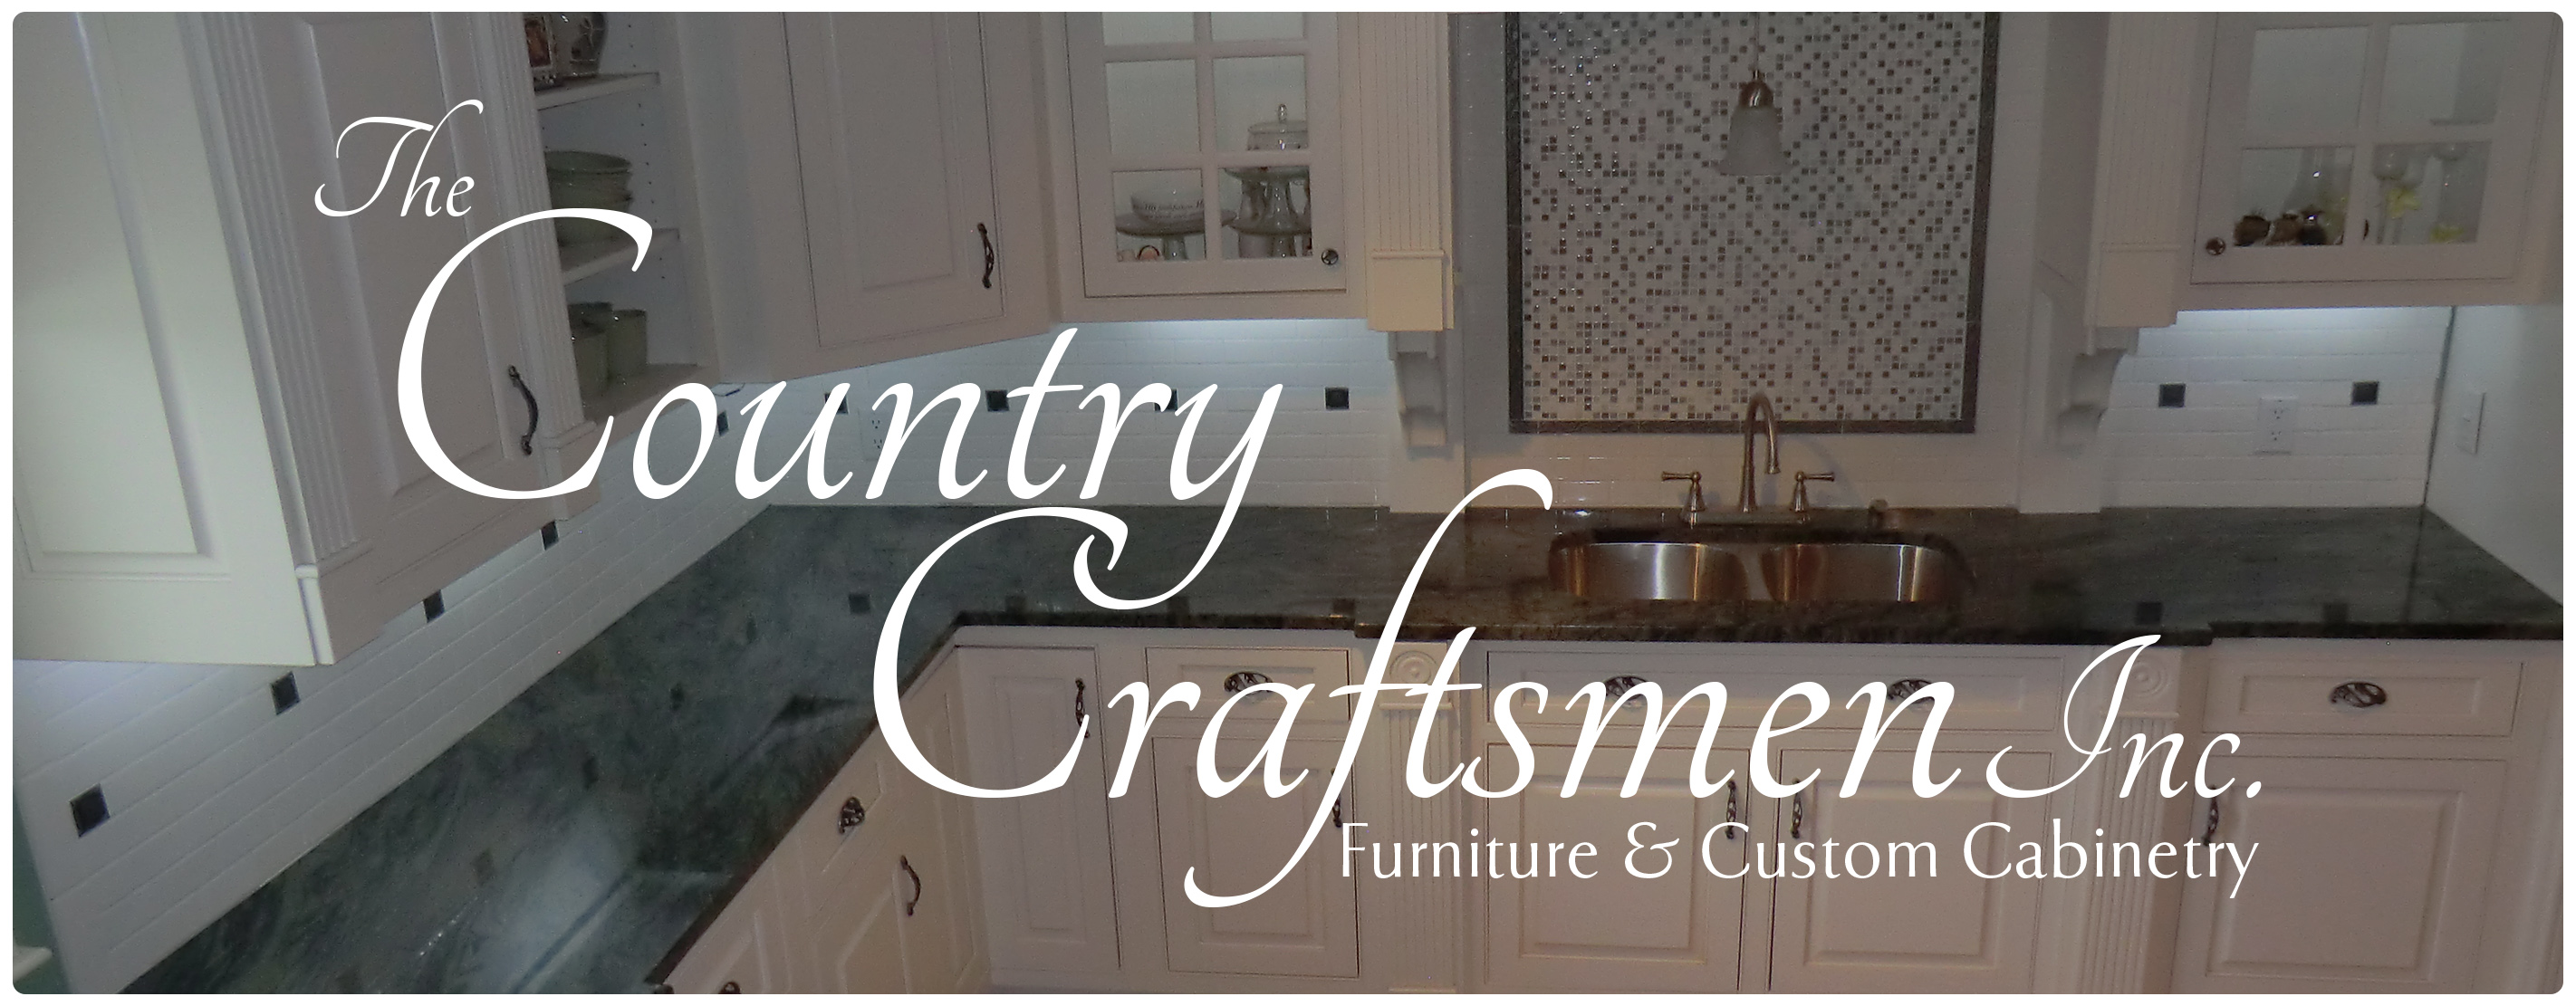 The Country Craftsmen Inc.